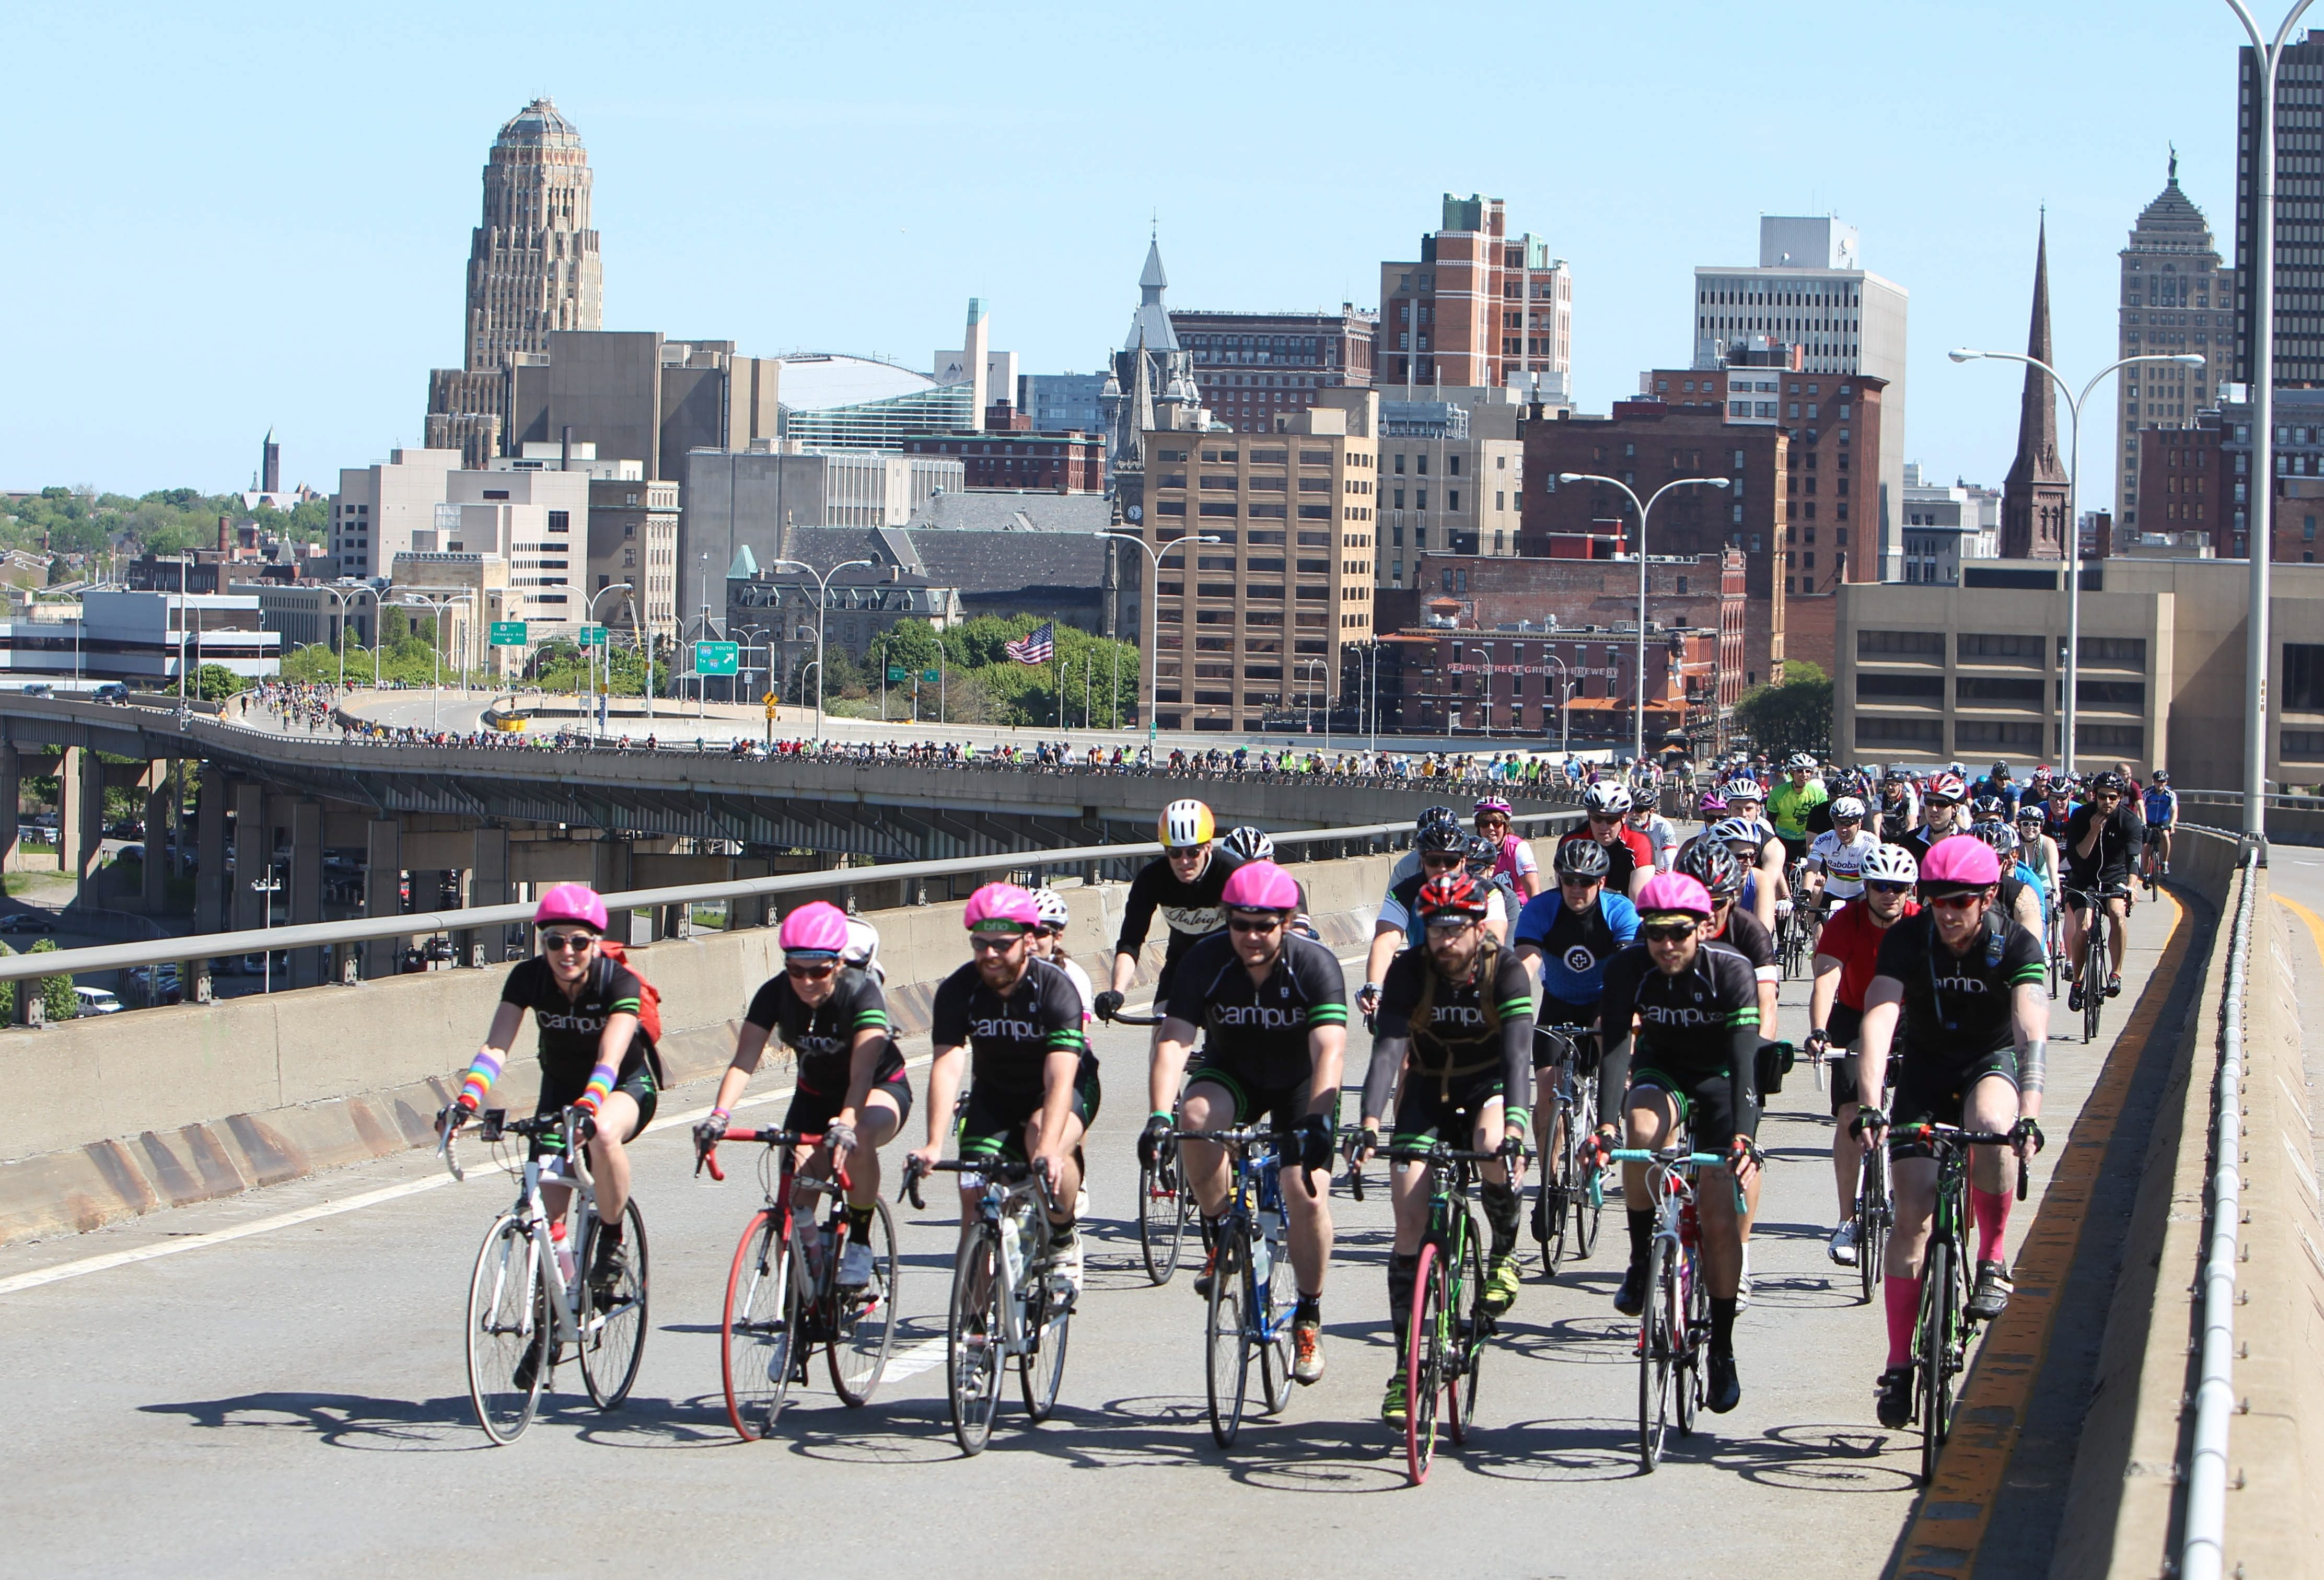 The annual bike ride over the Skyway is just one sign of Buffalo's growing acceptance of bicycling. (Sharon Cantillon/Buffalo News file photo)